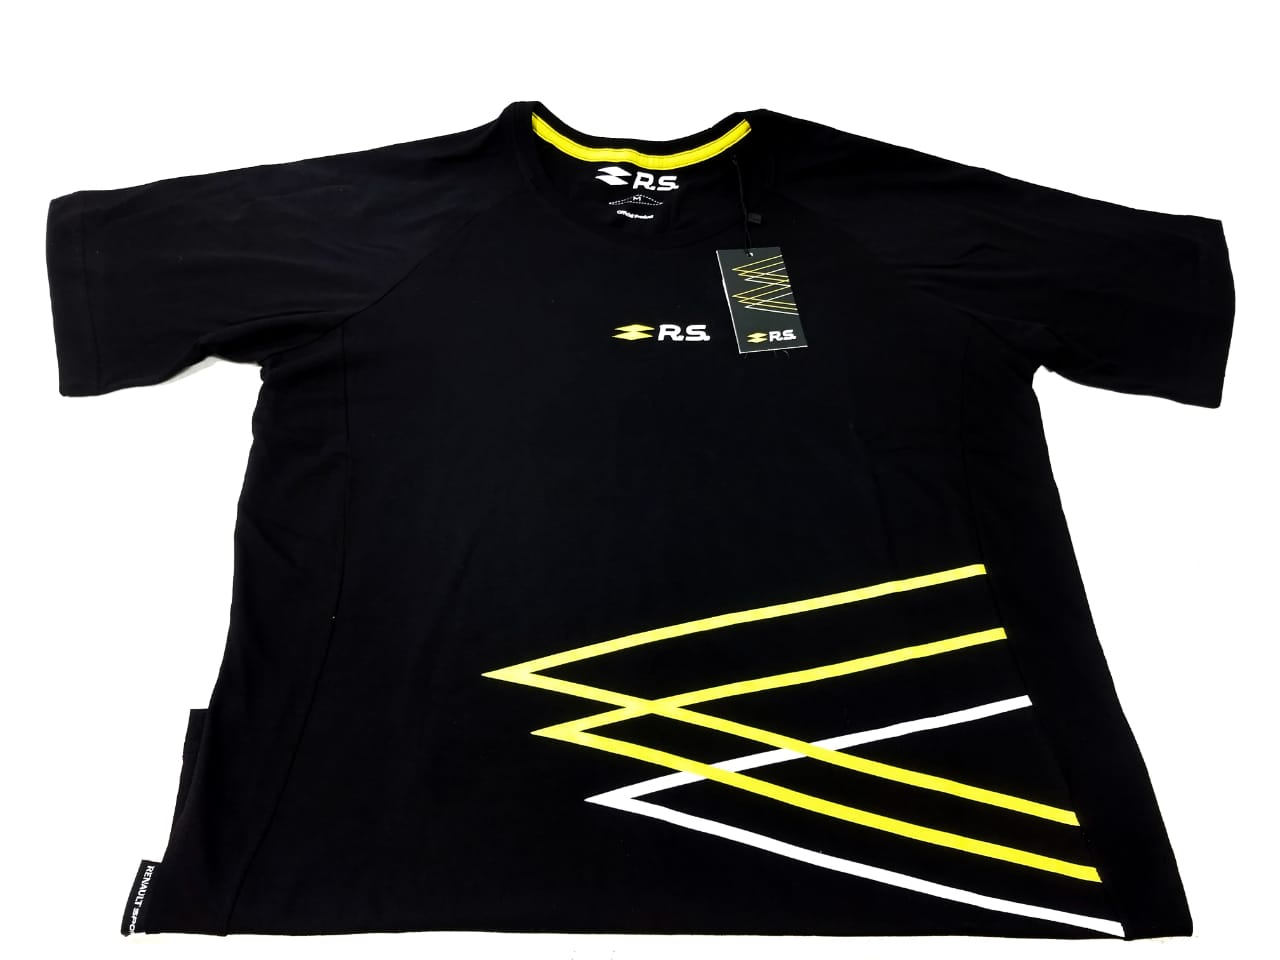 Camiseta M New Graphic Rs Masculino - Camiseta - Preto - Sku